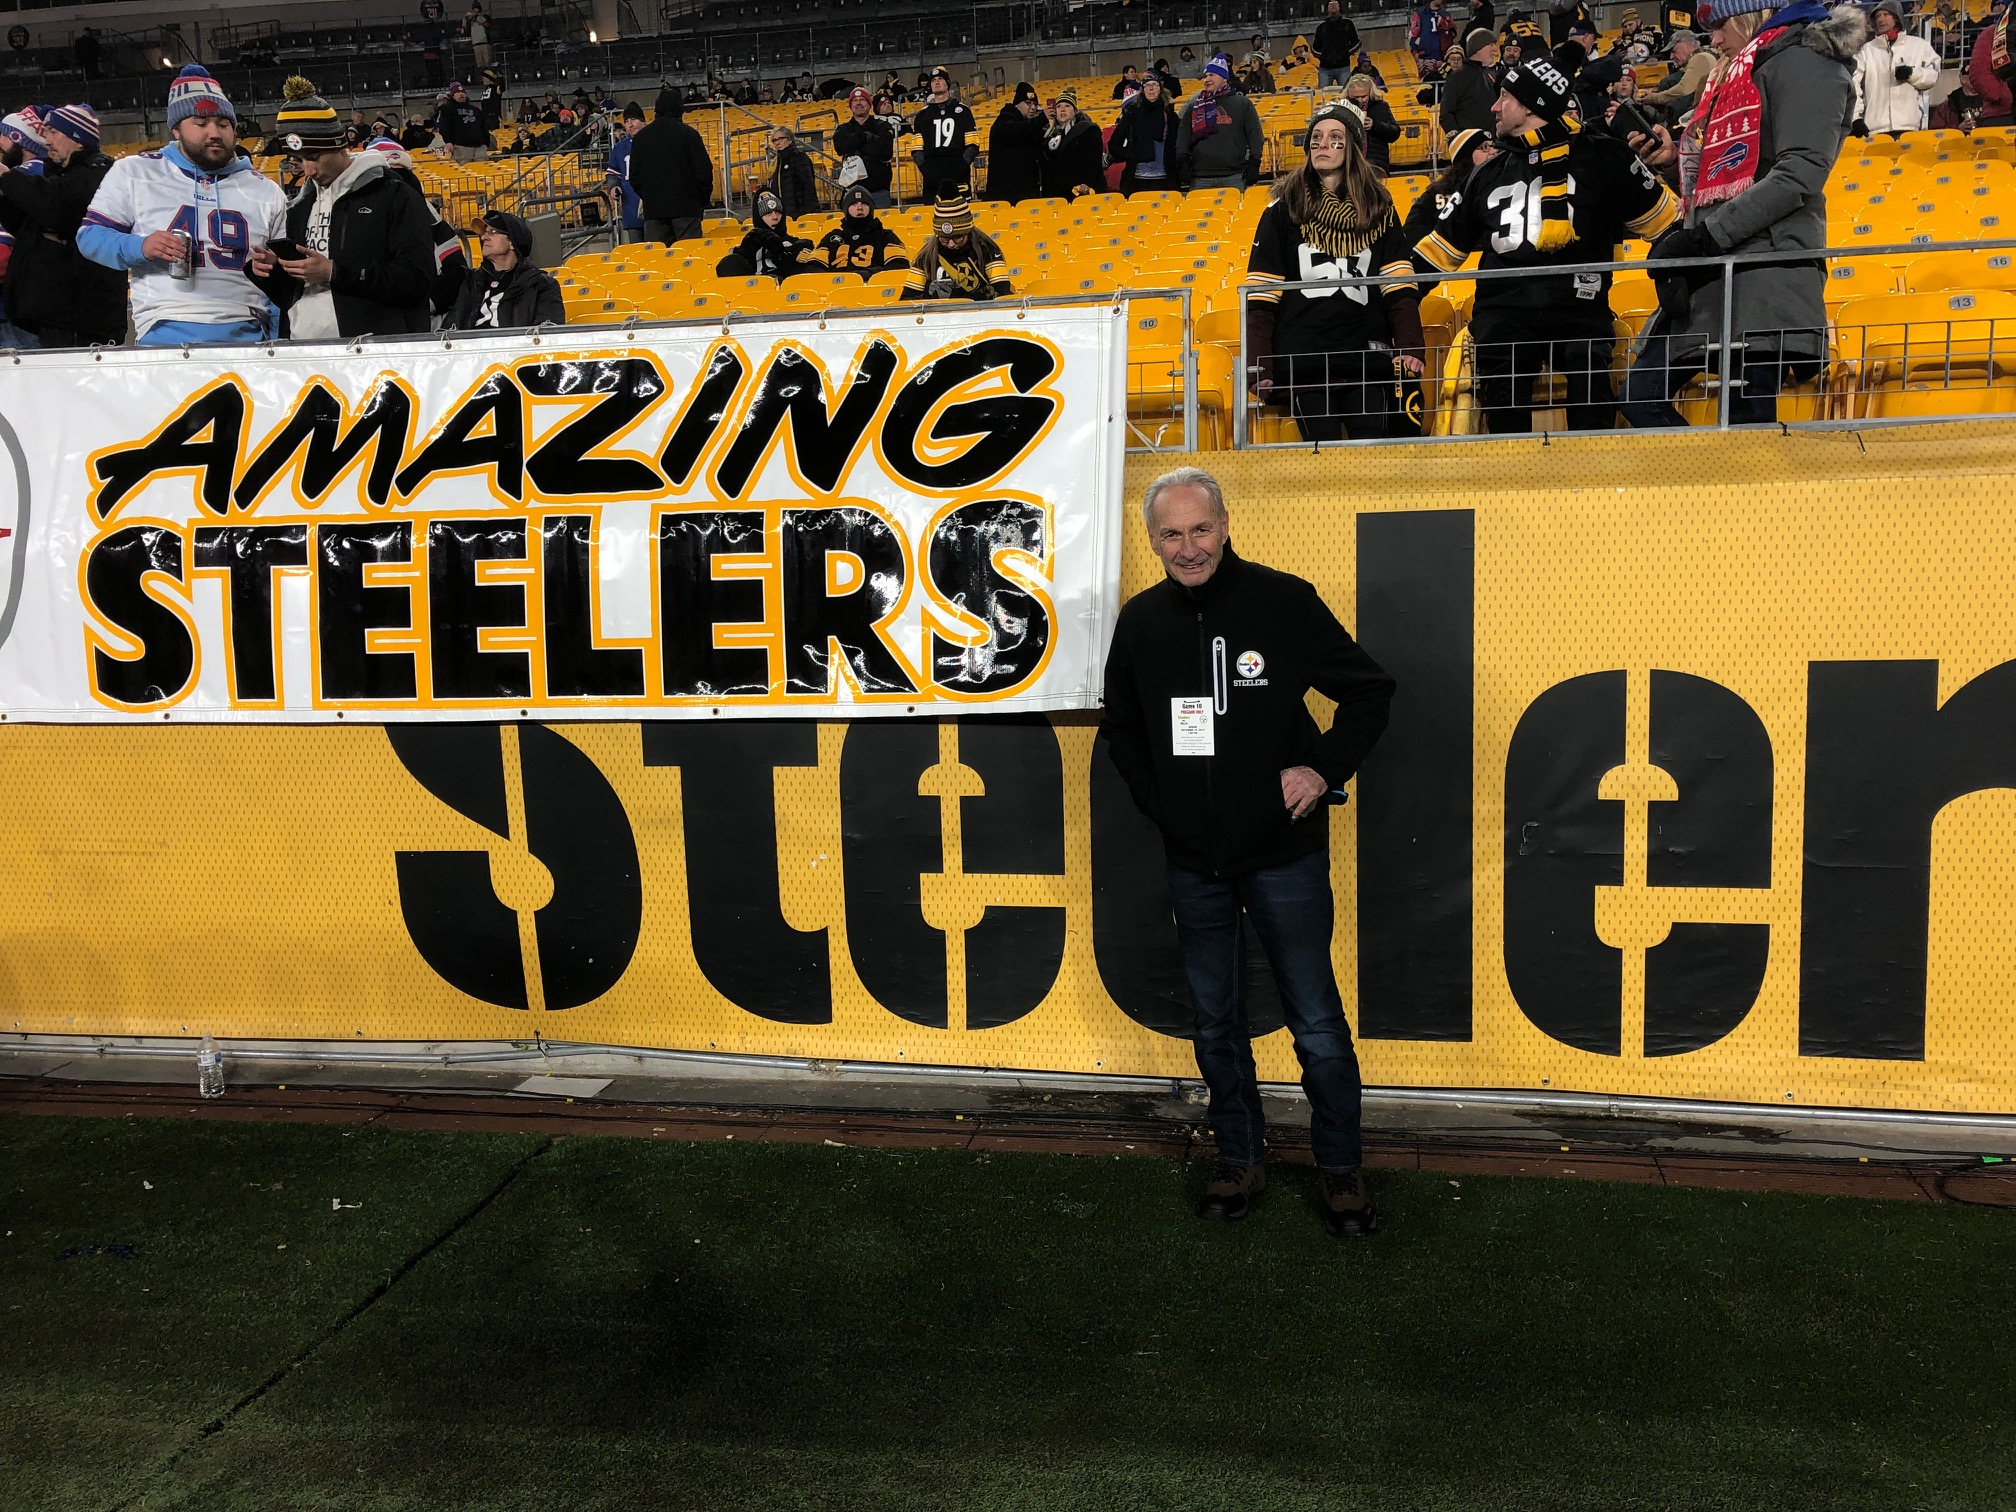 A Wish to go to my first Pittsburgh Steelers game Image